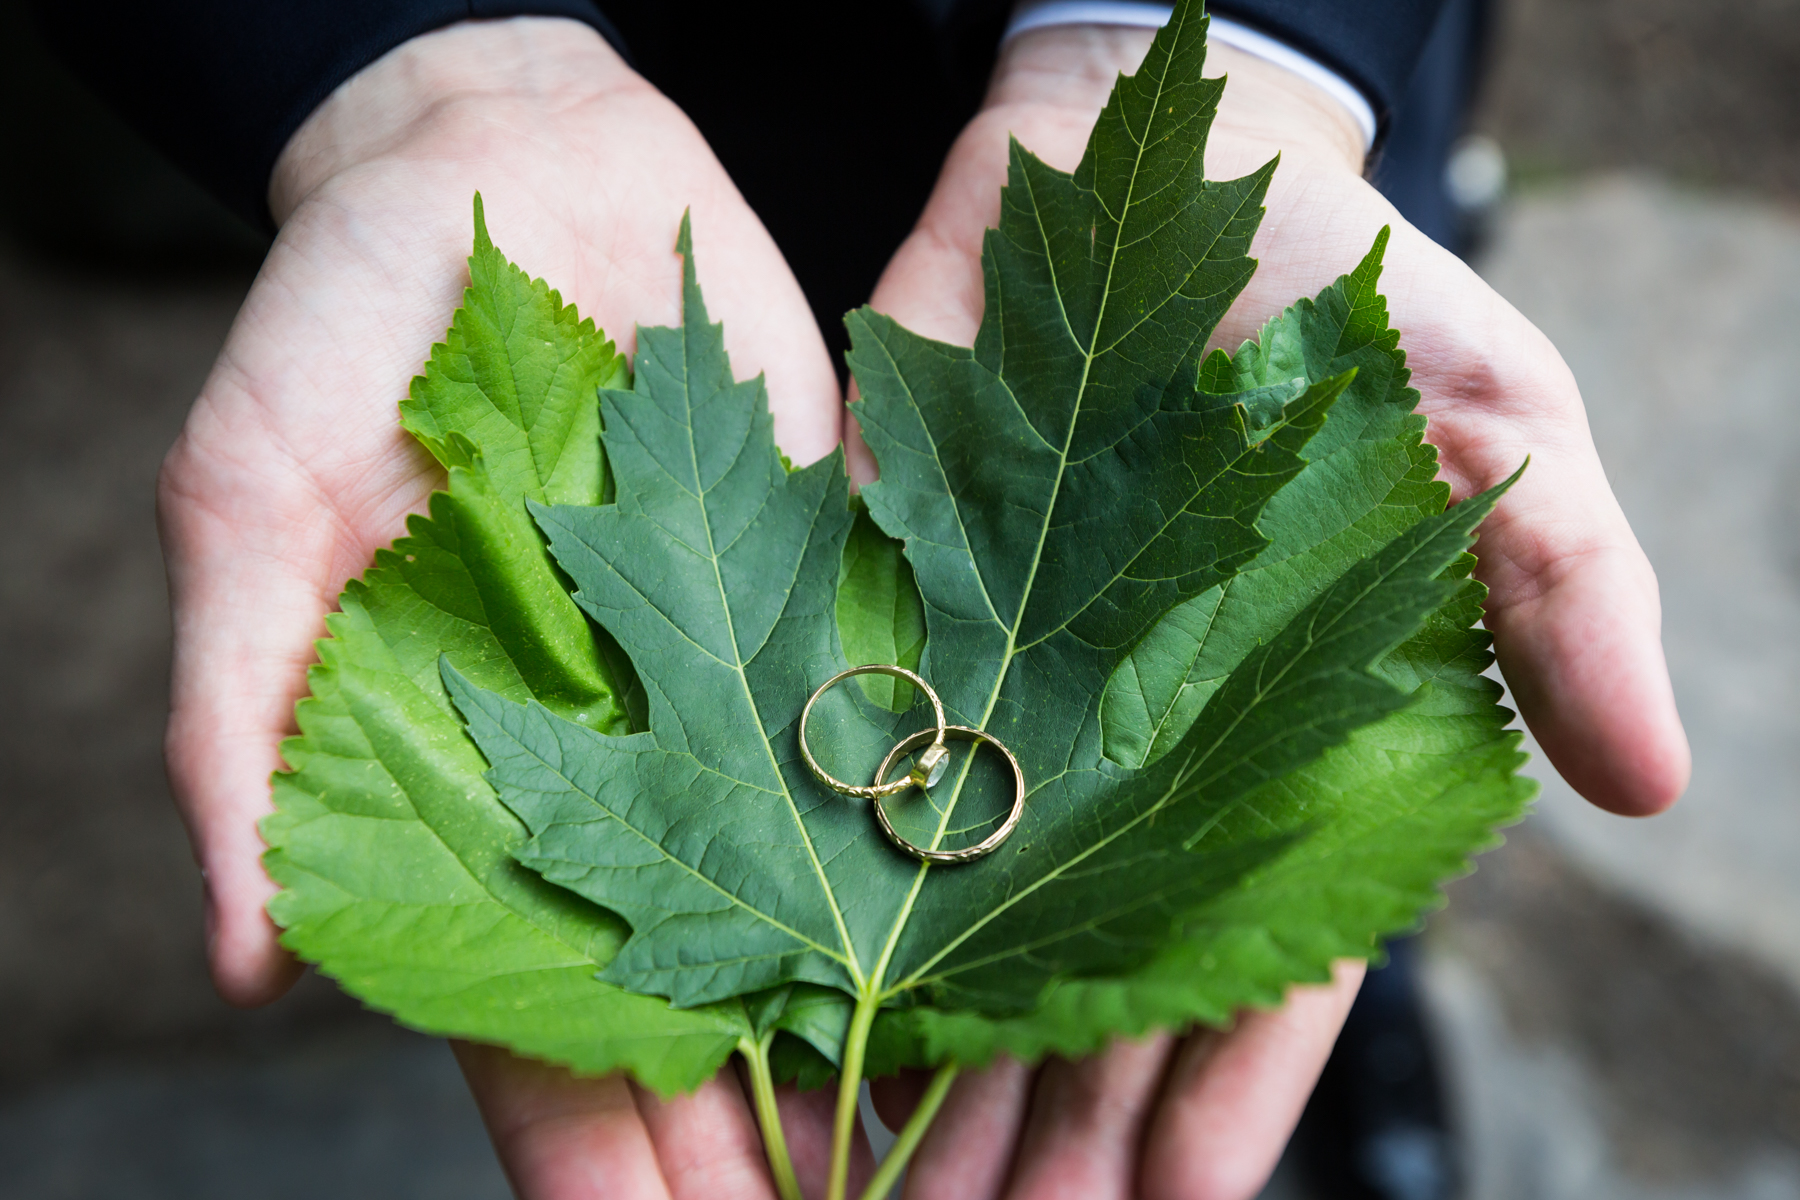 Wedding rings on leaves for an article entitled, 'Do you need a permit to get married in Central Park?'